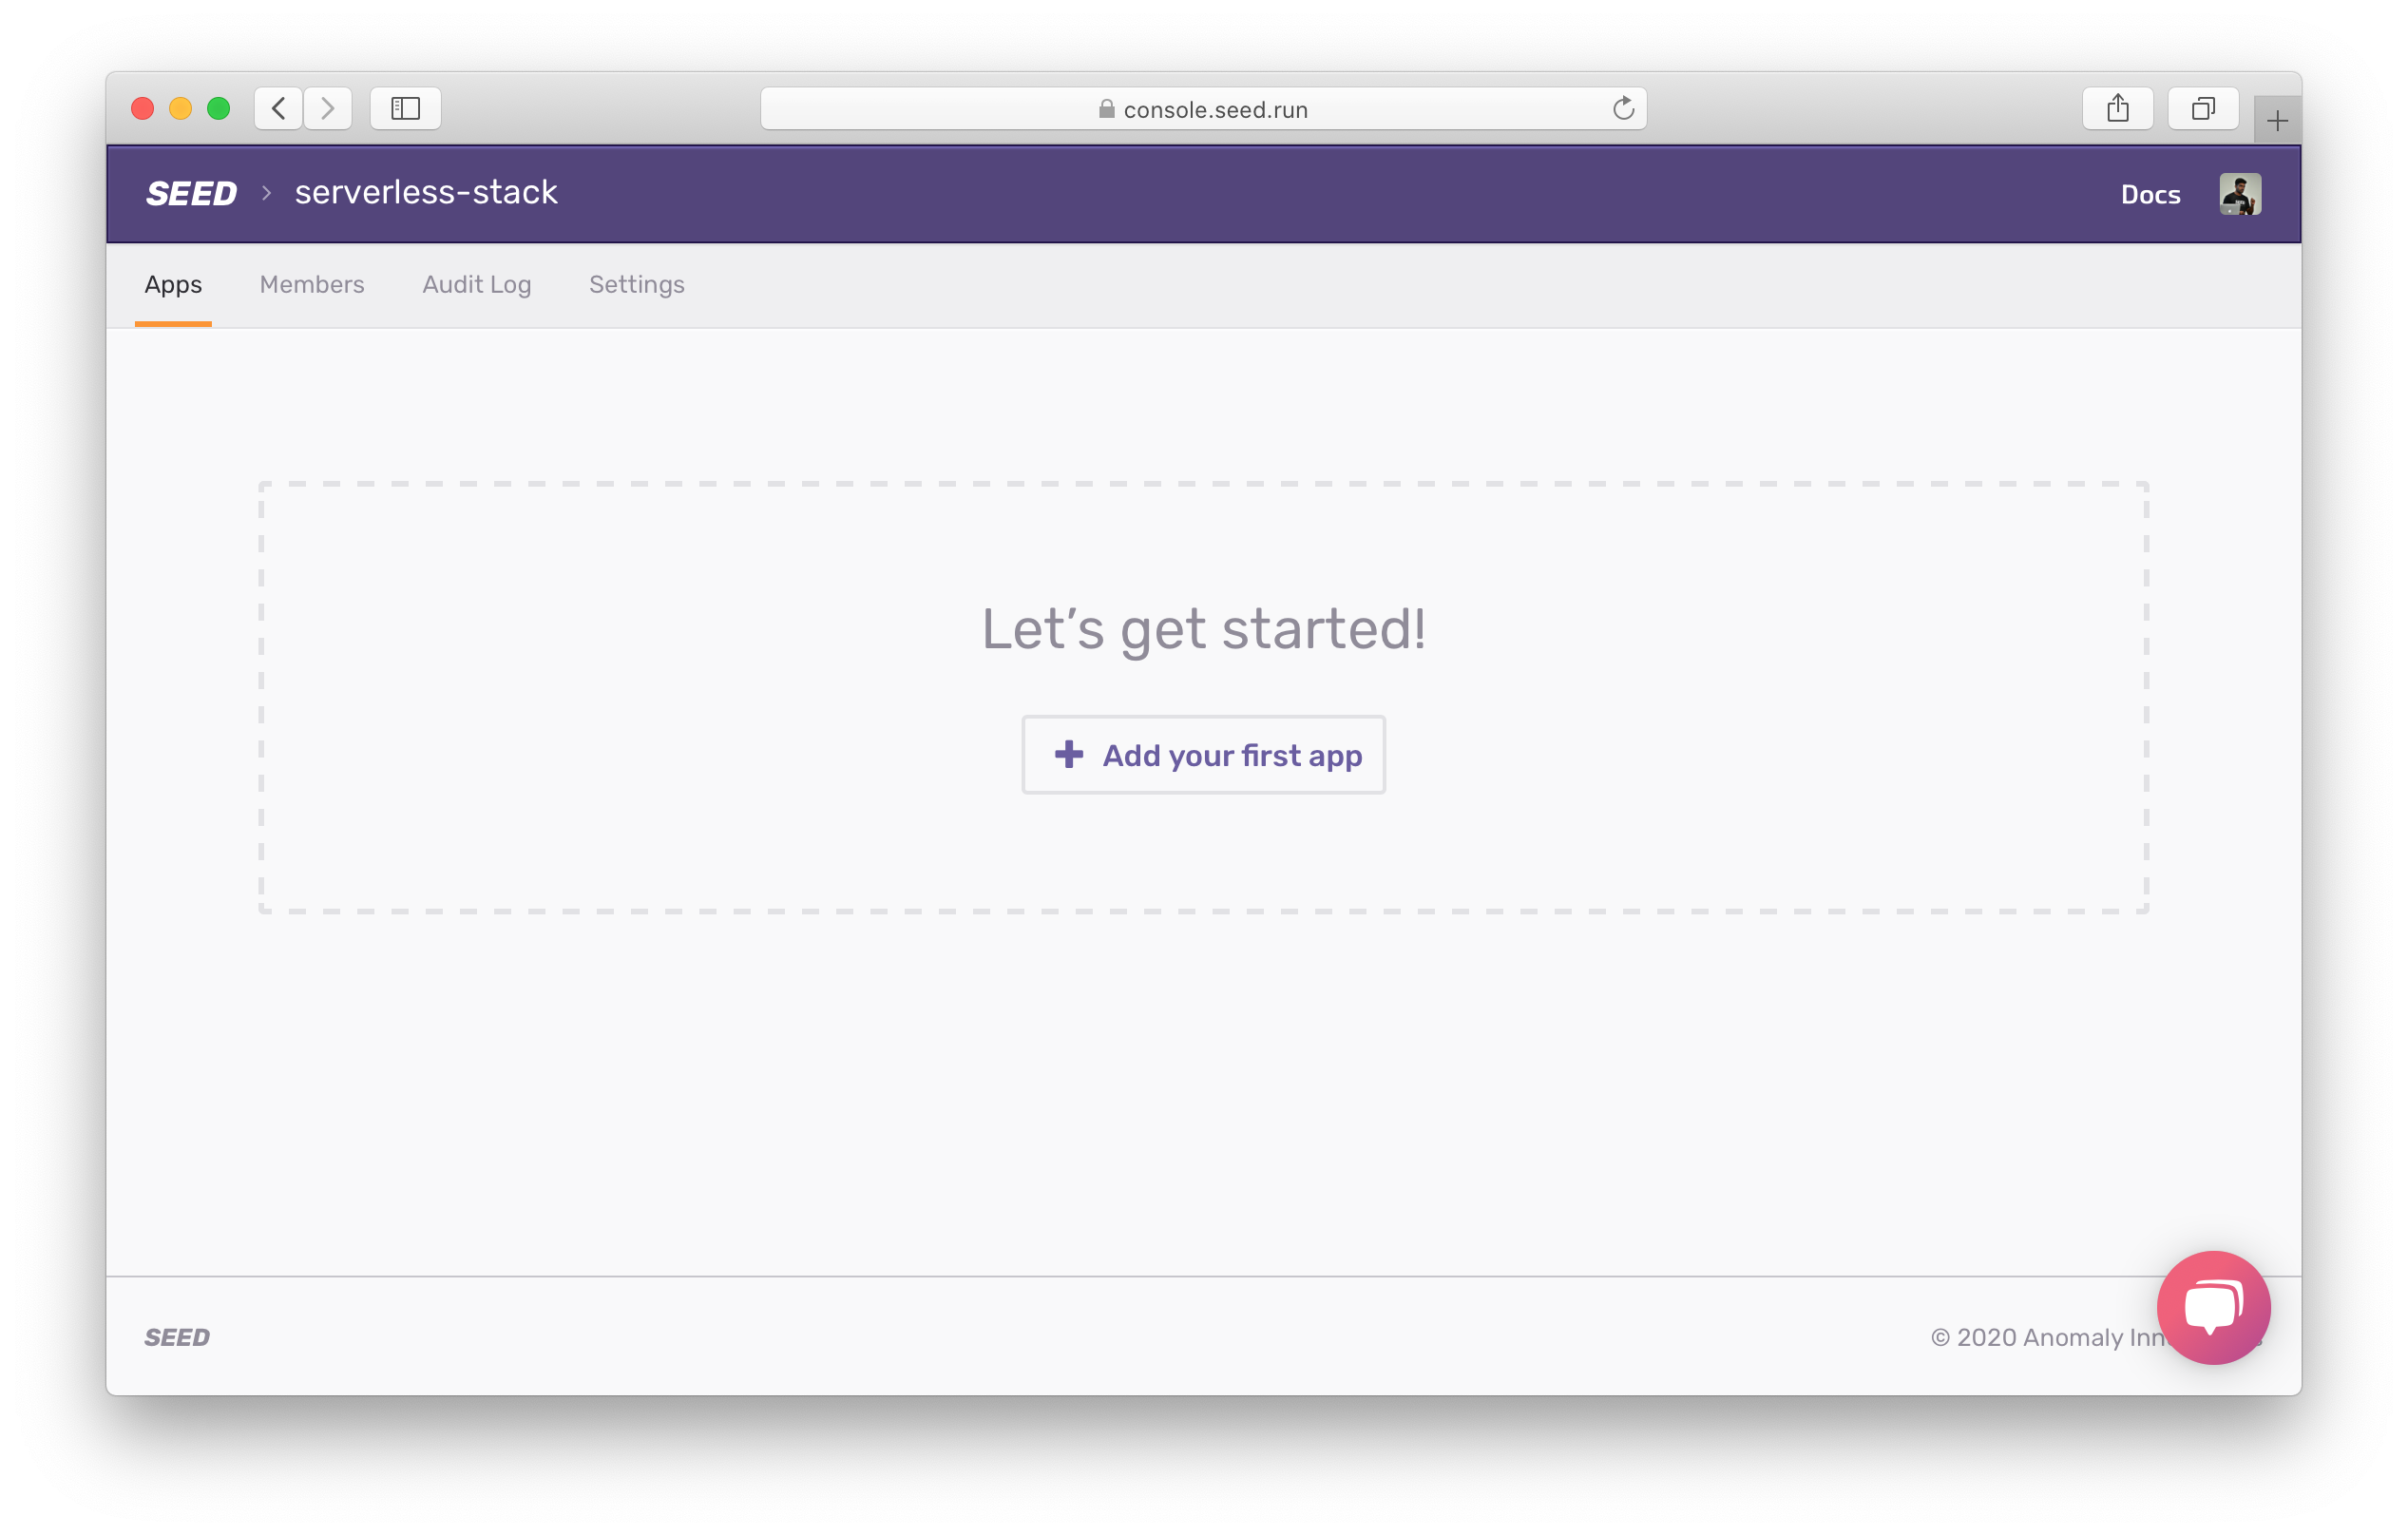 Add your first Seed app screenshot